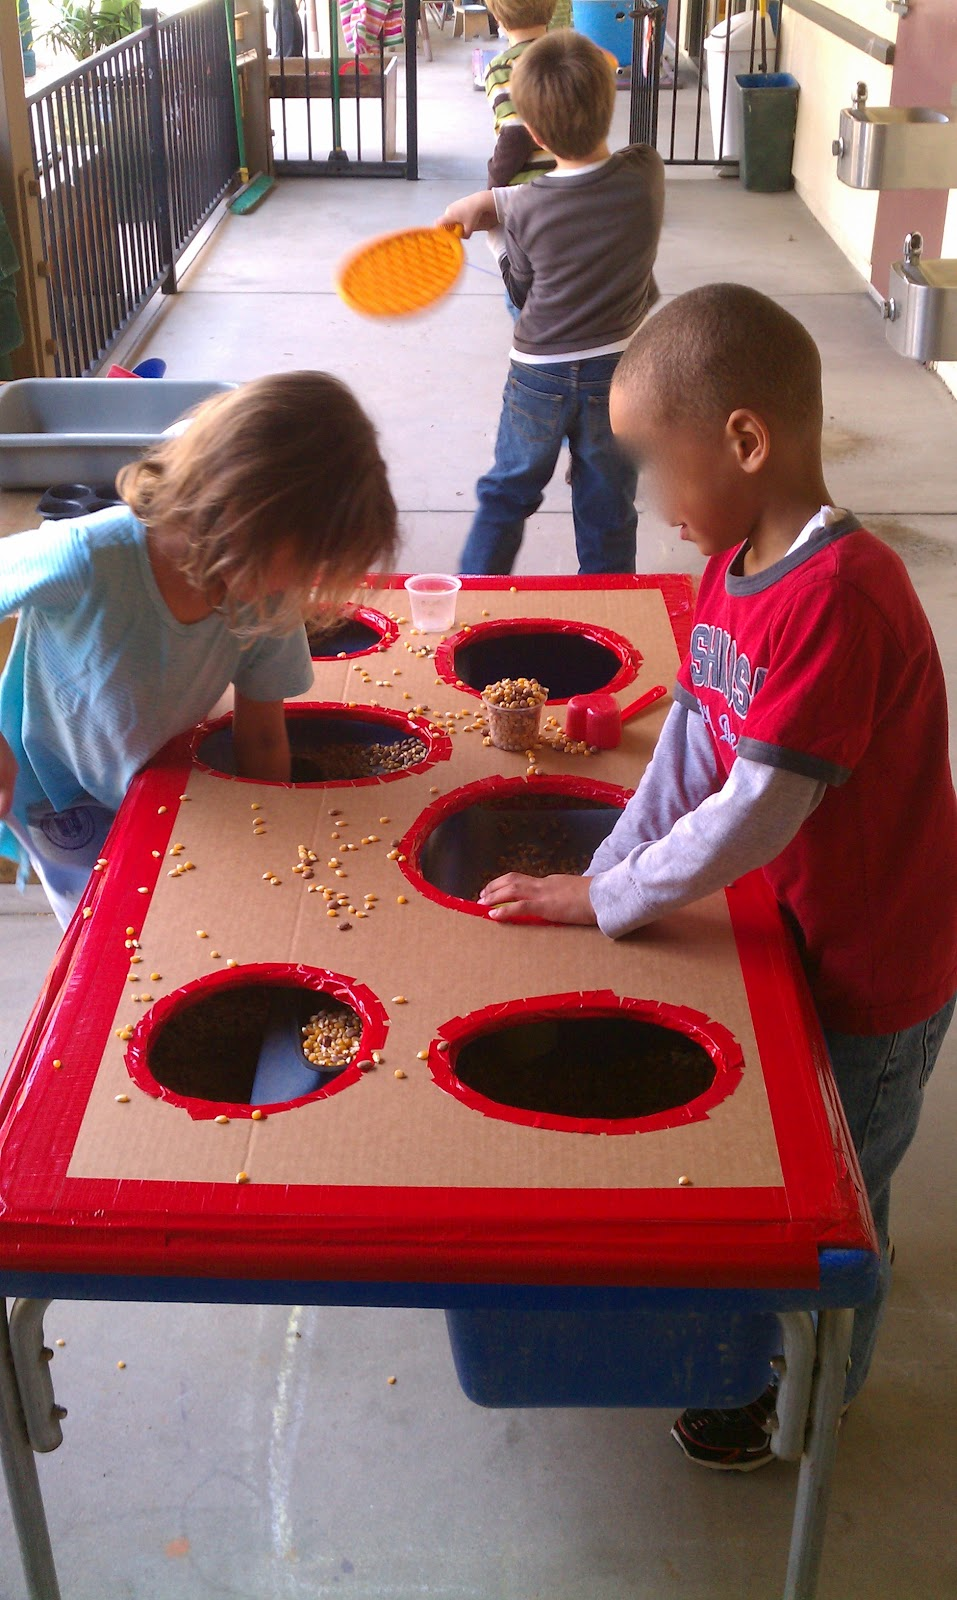 Classroom Ideas For Sensory Integration ~ Exploring the outdoor classroom sensory bin with a hole y top